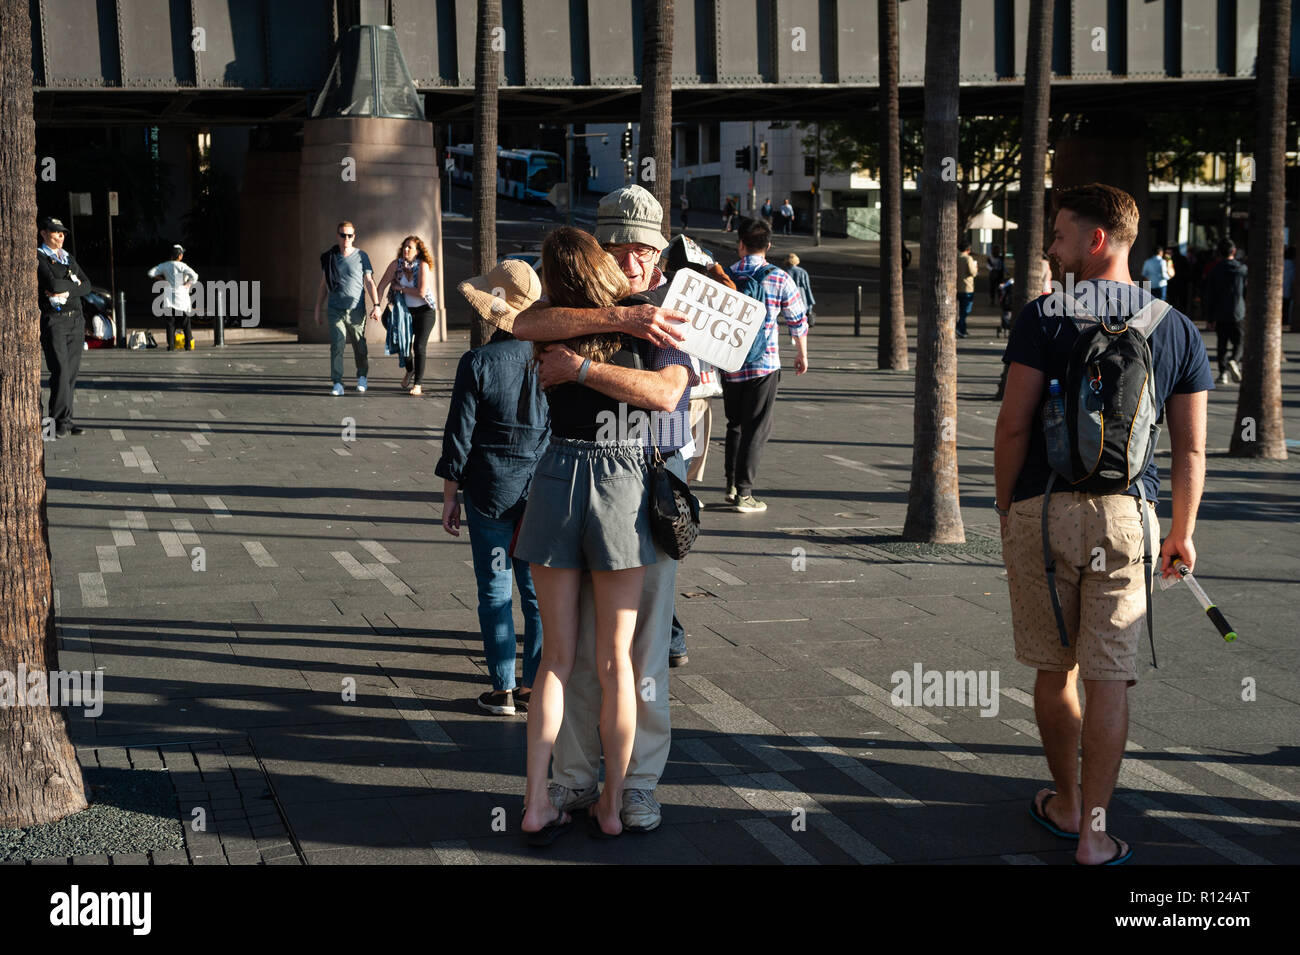 06.05.2018, Sydney, New South Wales, Australia - A man offering free hugs along Circular Quay is hugging a young woman. - Stock Image